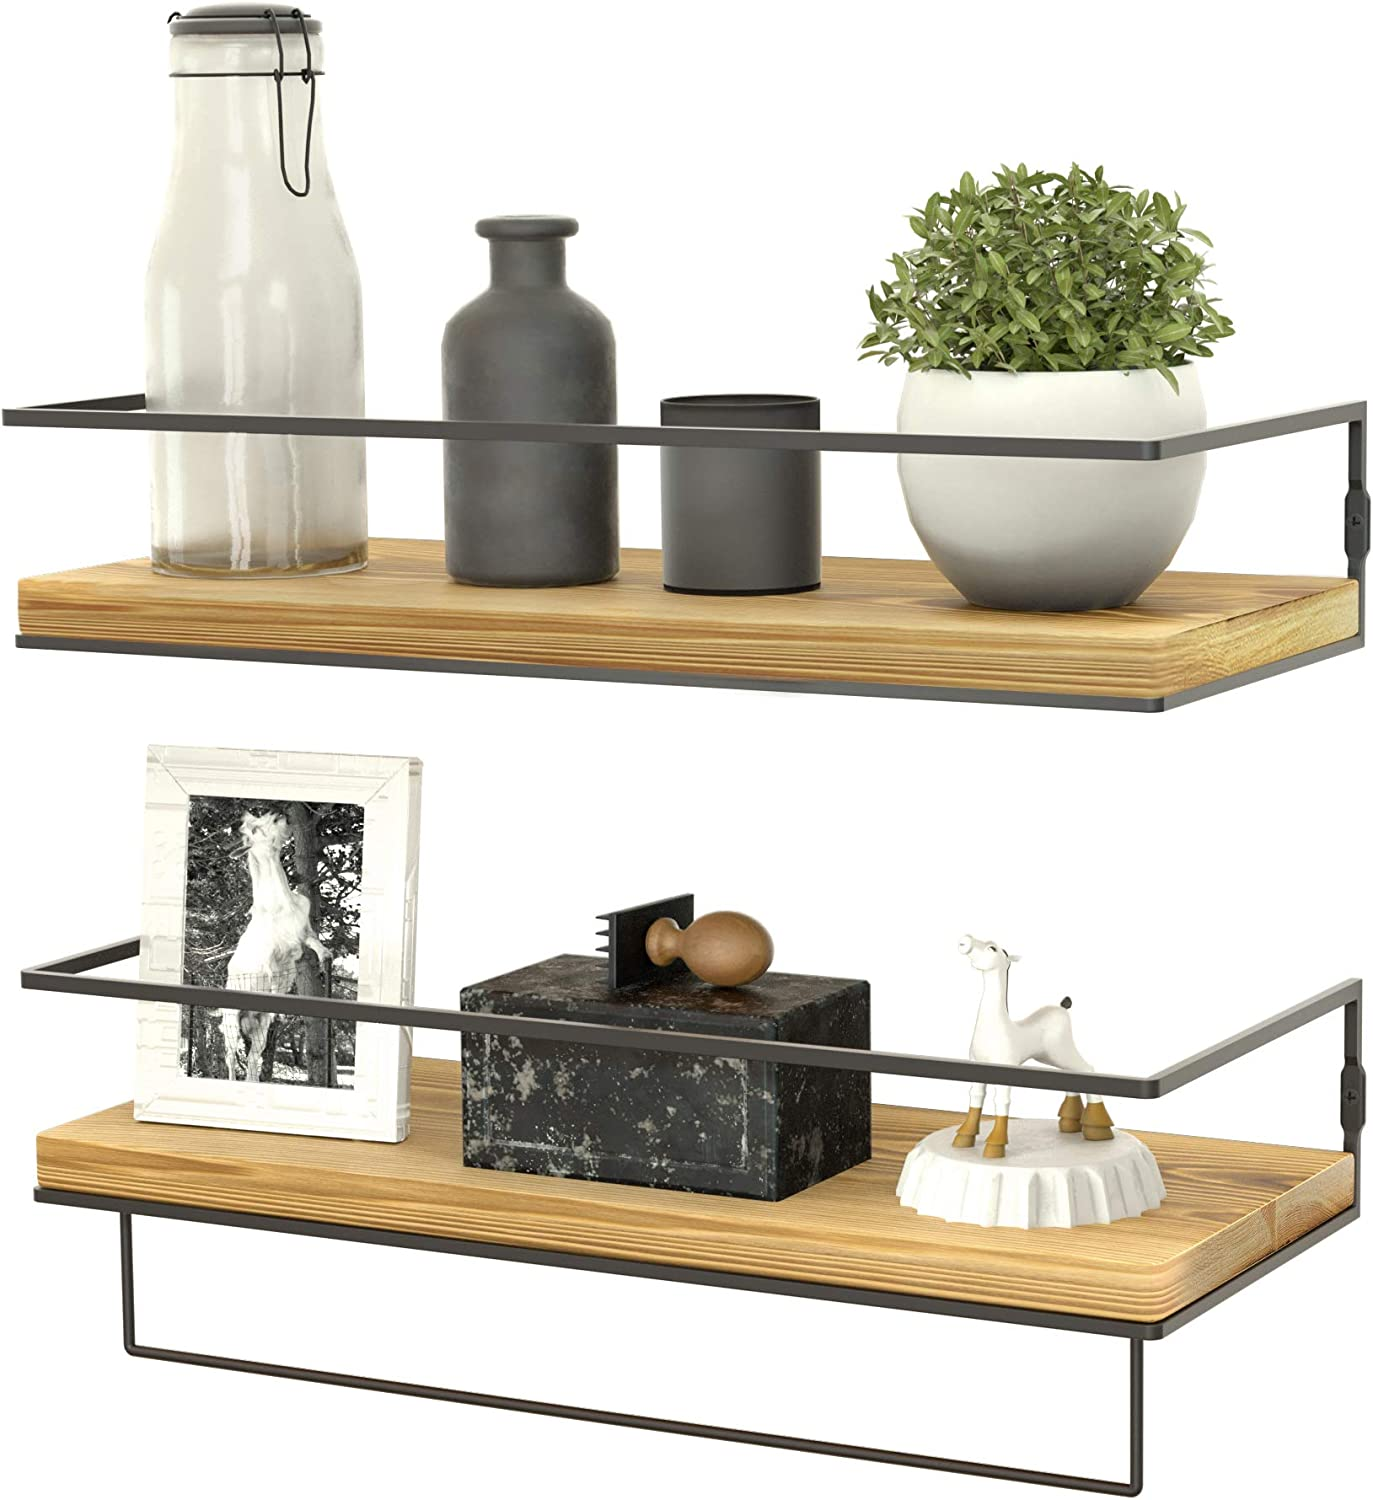 ZGO Floating Shelves for Wall Set of 2,Rustic Wood Wall Mounted Decor Storage Shelves with Black Metal Frame and Towel Rack for Bathroom, Bedroom, Living Room, Kitchen, Office